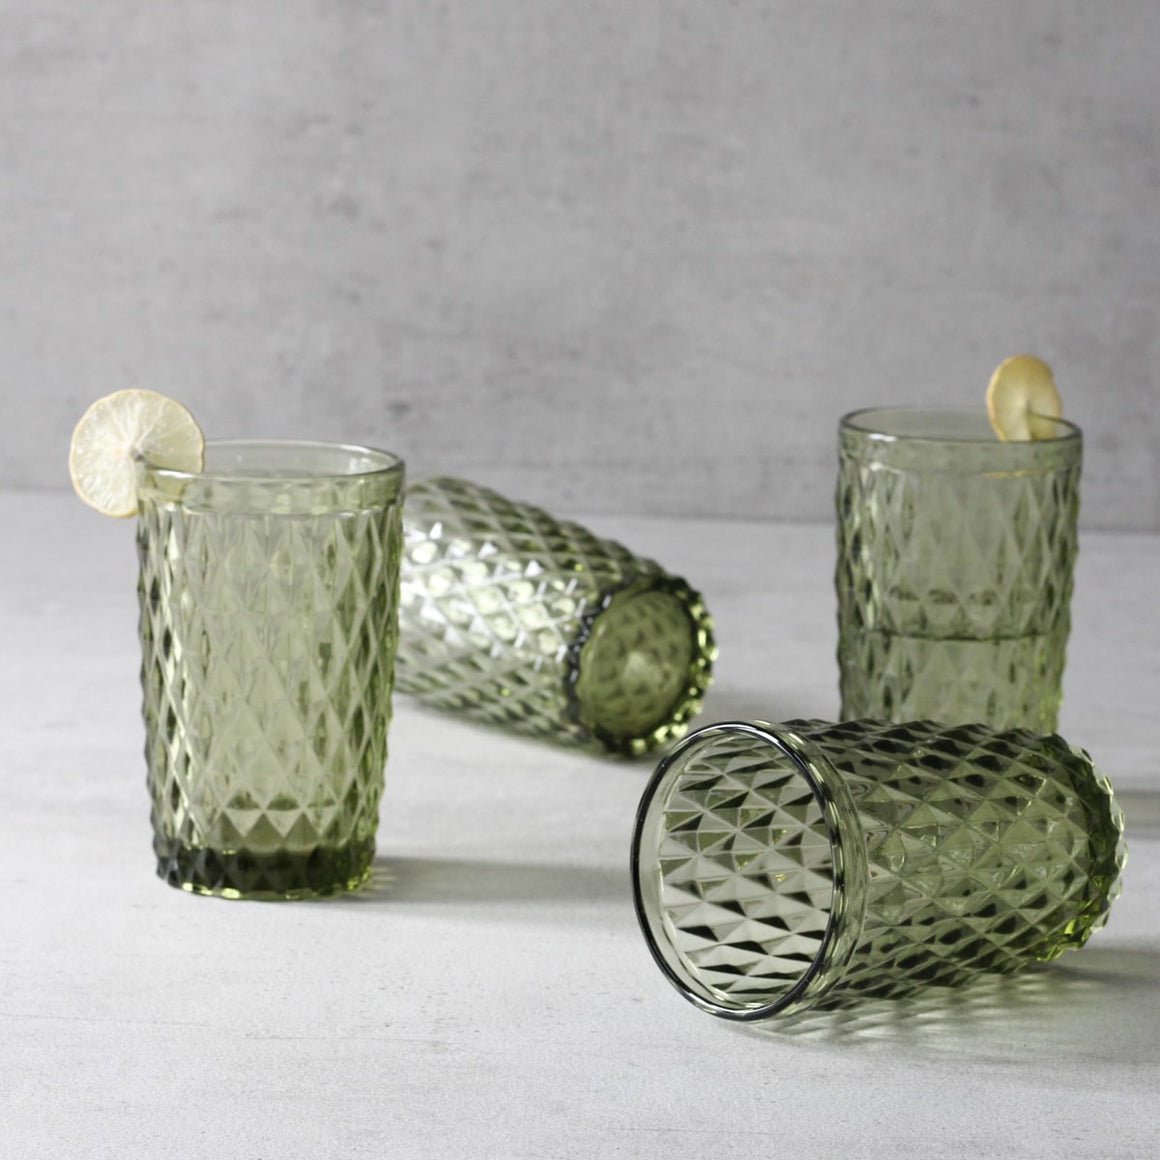 Atwood Kale Drinking Glasses - Set of 4